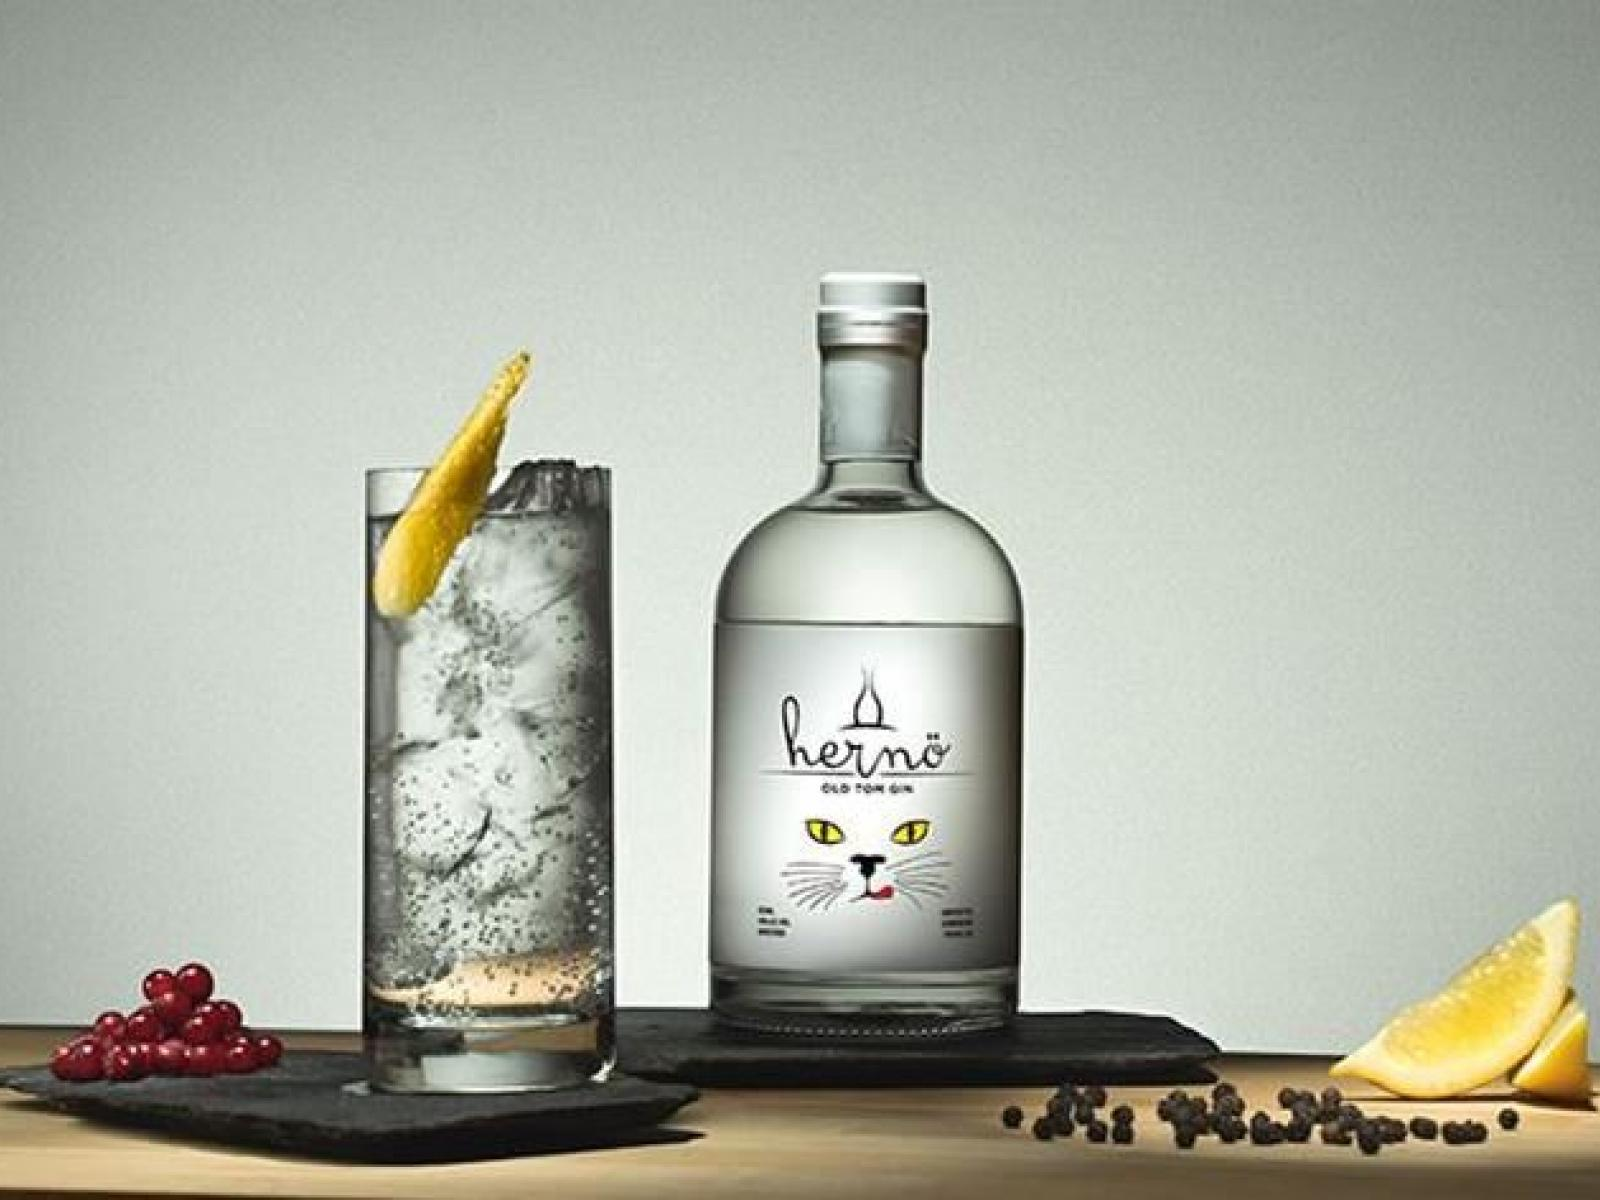 Hernö Old Tom Gin, awarded World's Best Gin for a Gin & Tonic 2020, IWSC